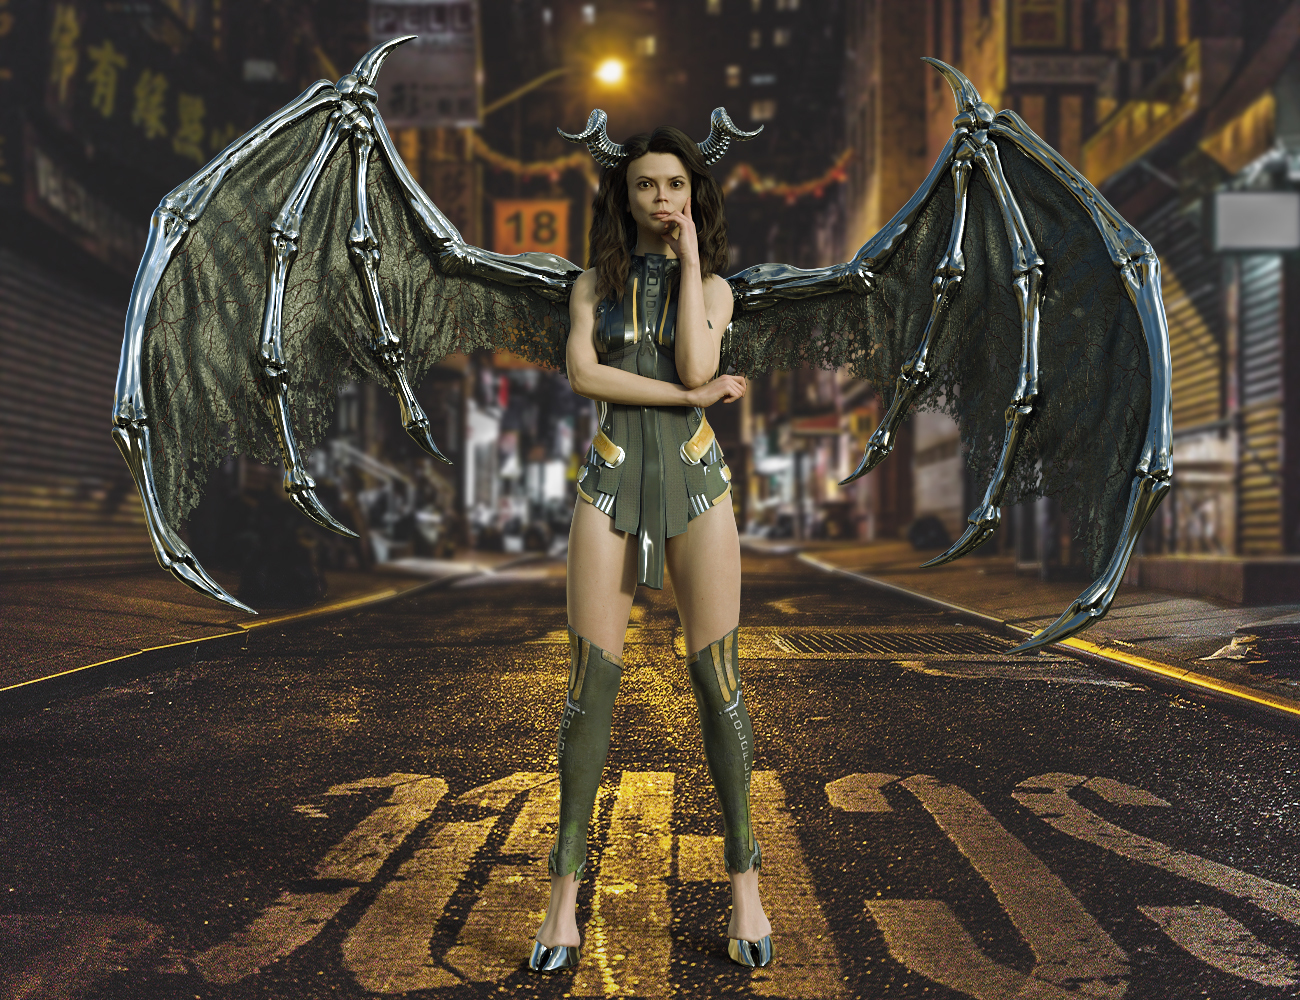 Sci fi Succubus by midnight_stories